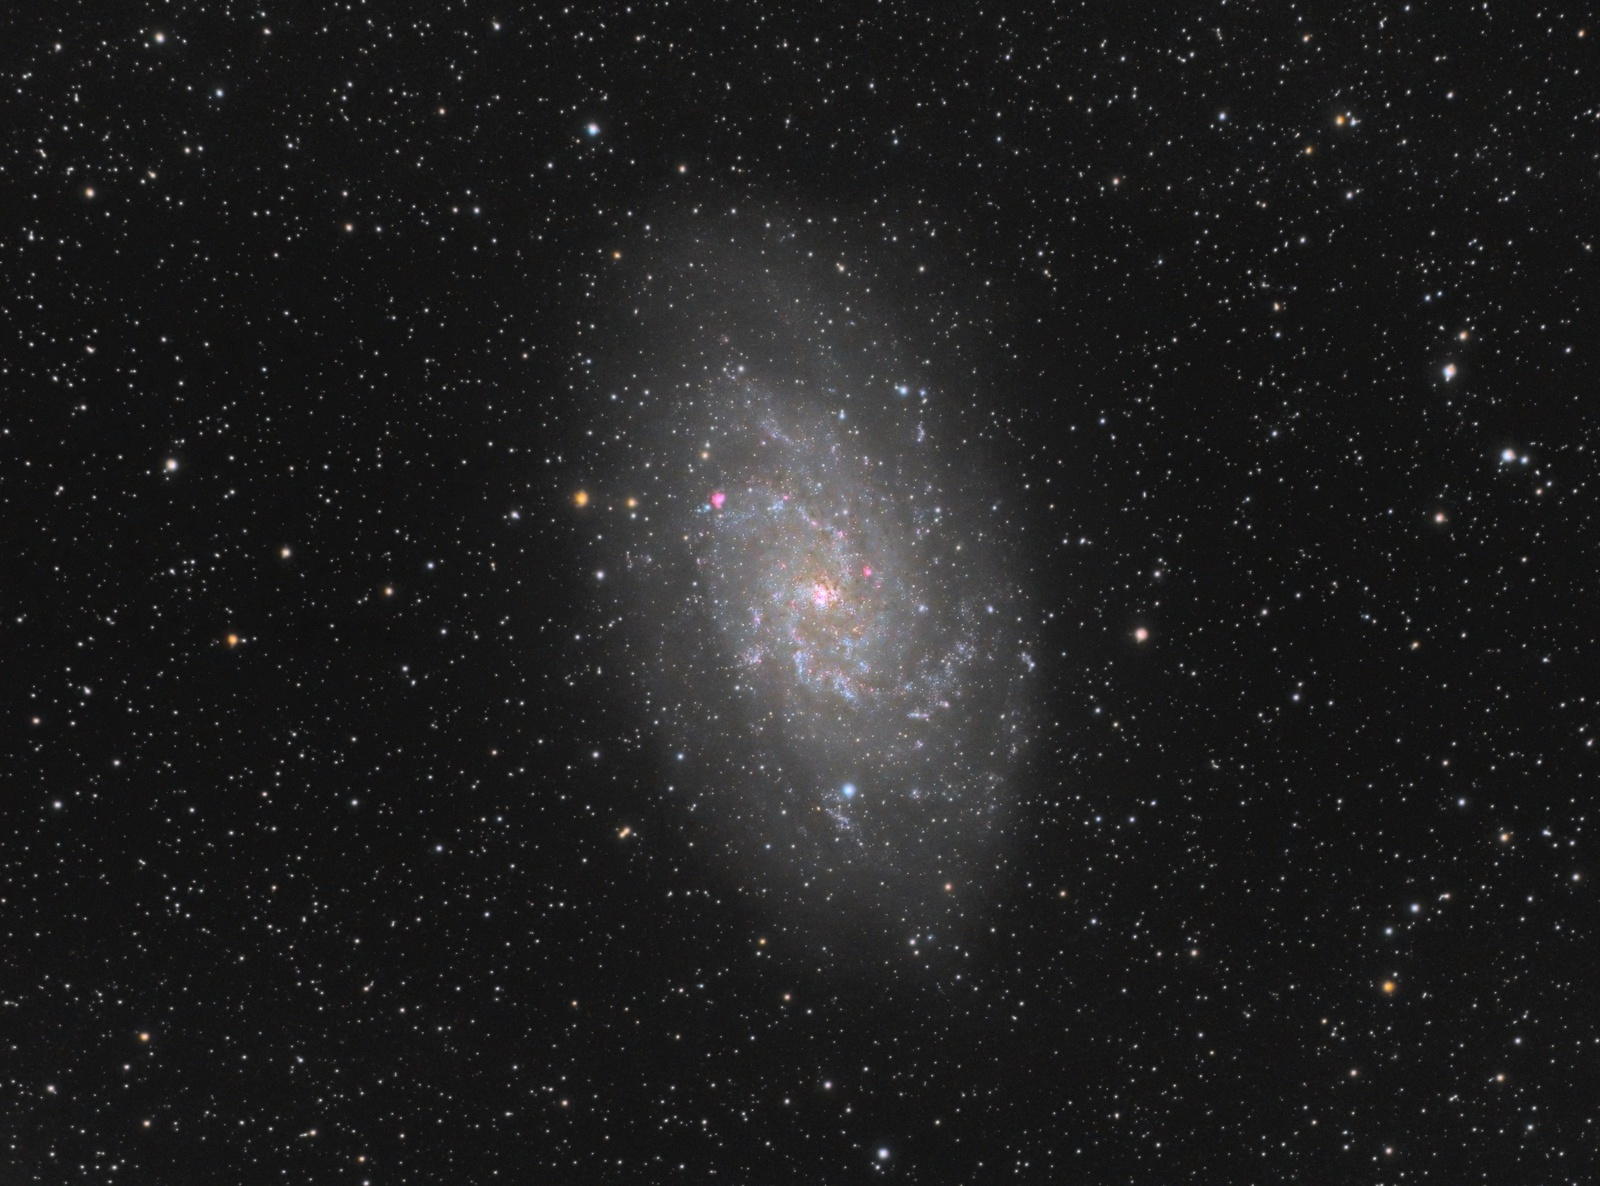 718596717_Messier33web.thumb.jpg.f78258d05cd73642644102f4fb43837c.jpg